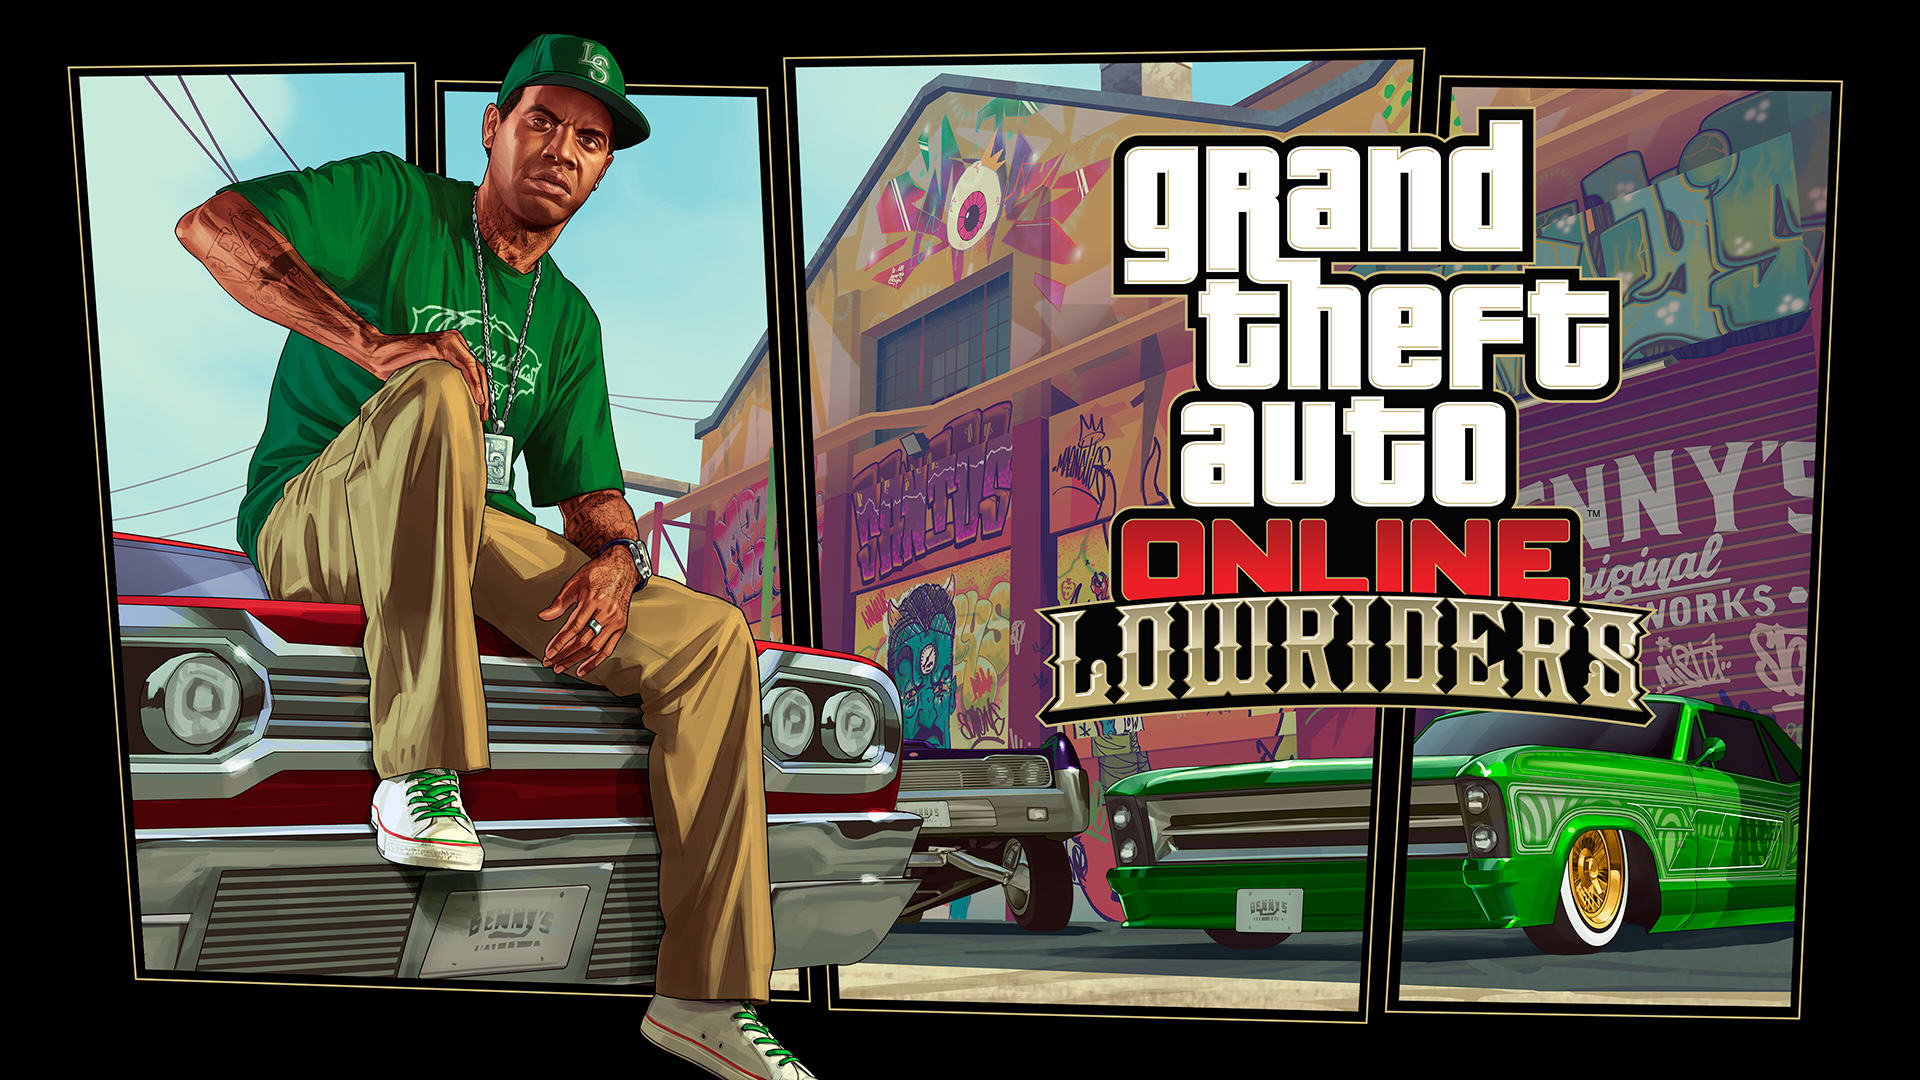 UNILAD gtao lowriders 1920x108054936 Lowriders Bounce Into GTA Online With Slick New Trailer